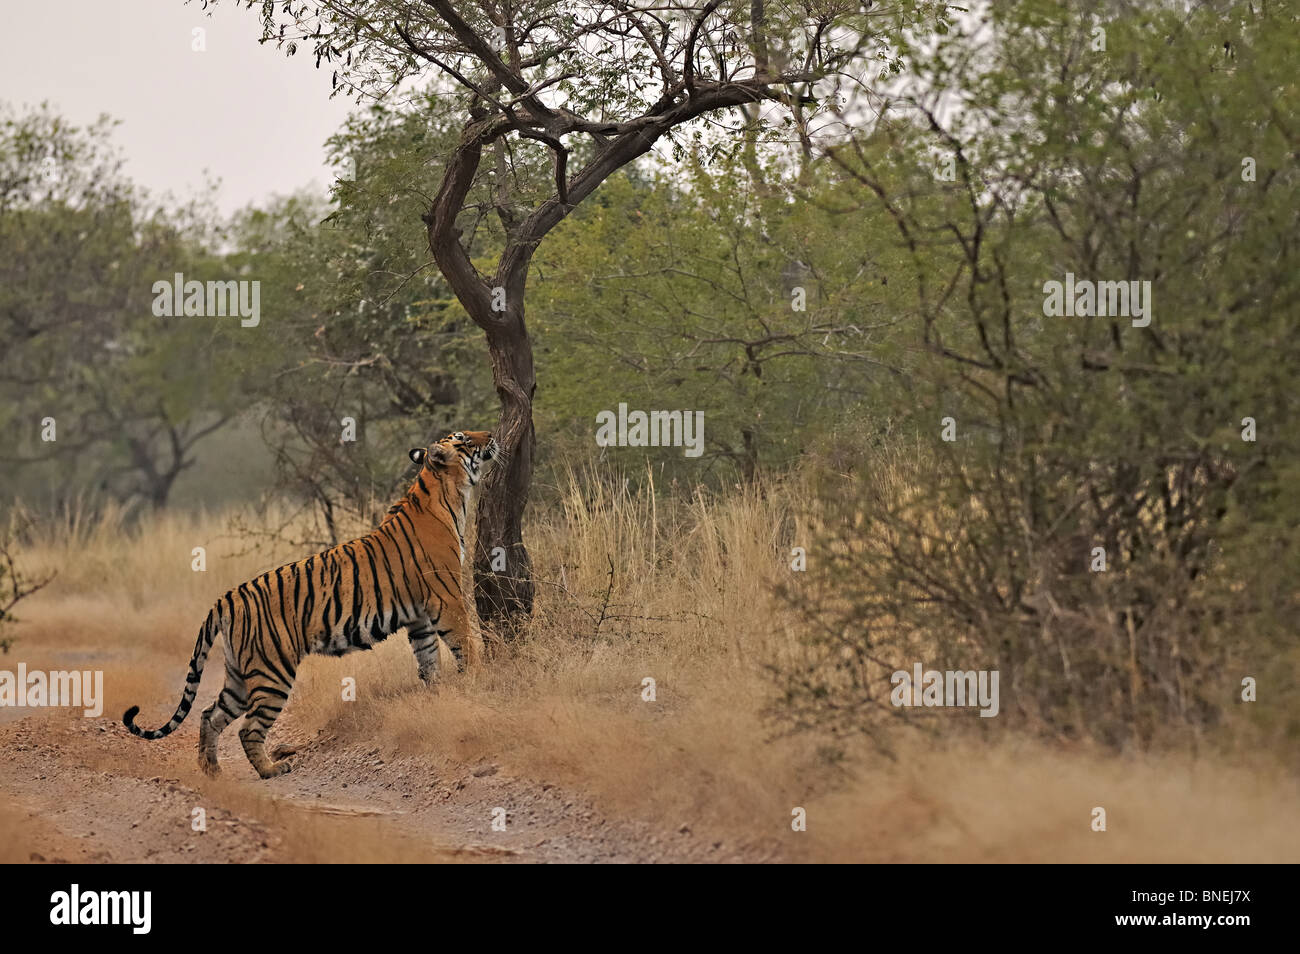 Tiger in the forest or jungle habitat of Ranthambore tiger reserve - Stock Image